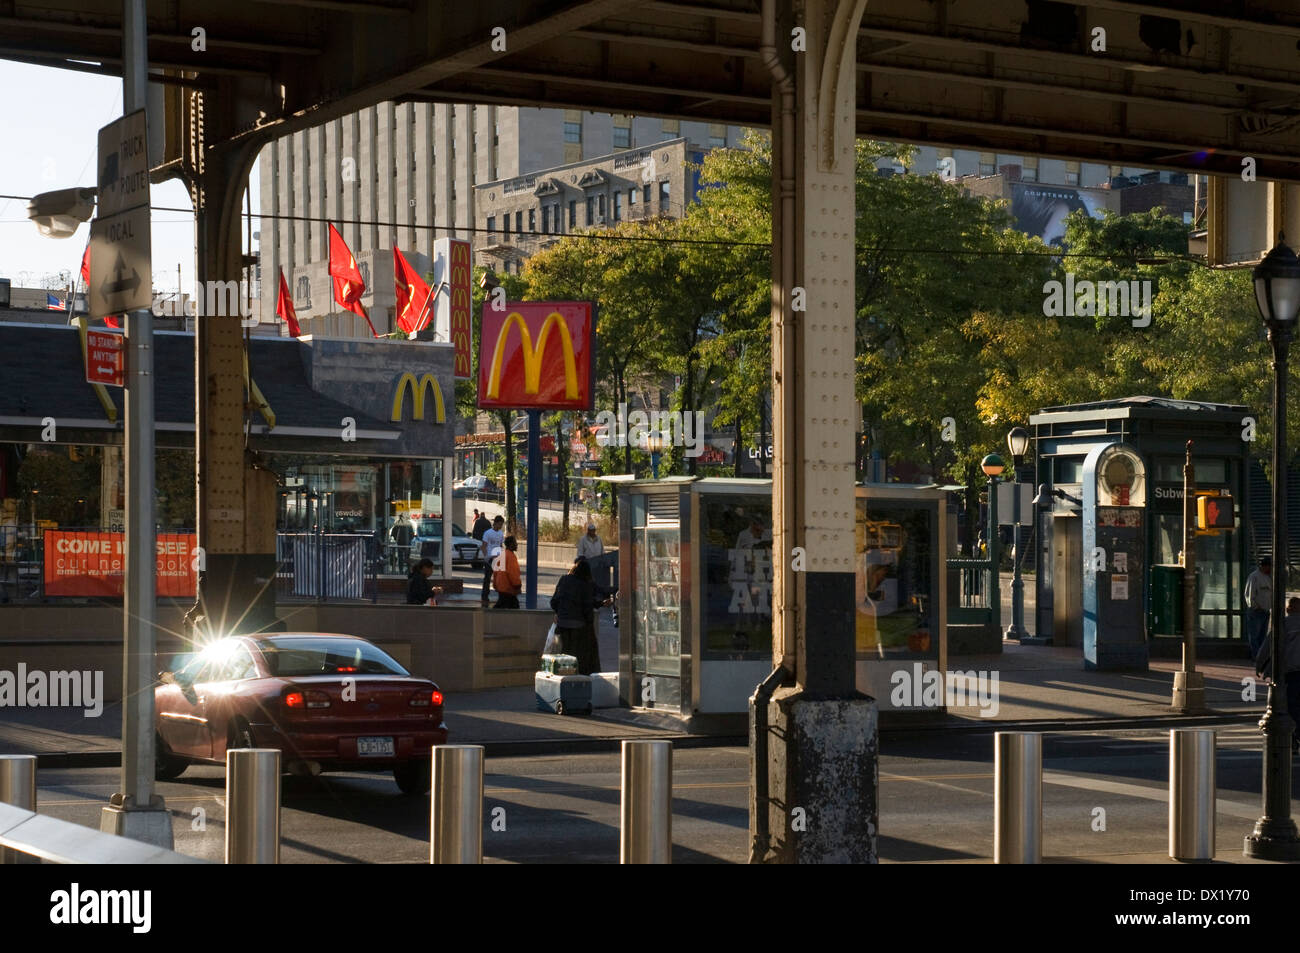 Typical landscape in the Bronx near a Mc Donnalds with elevated metro. Bronx Thinking nothing can make us imagine some friendly - Stock Image